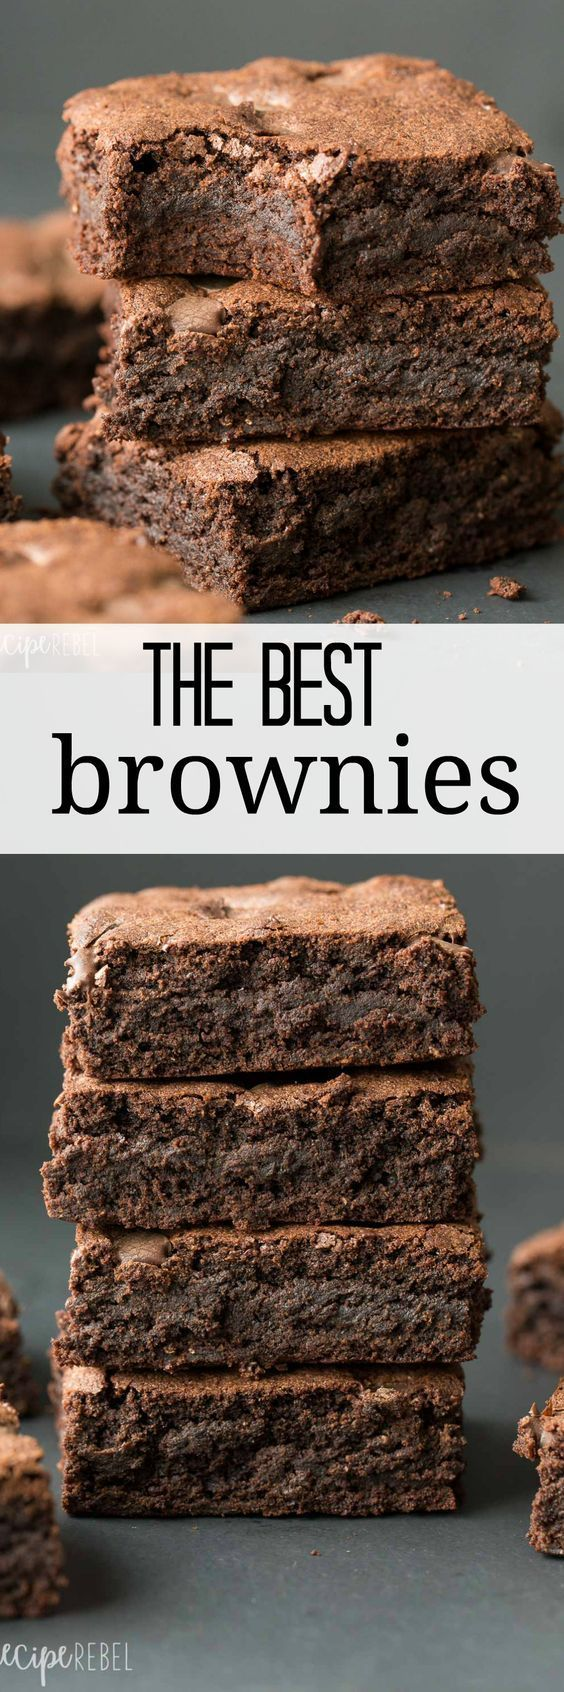 Perfectly rich, dense, fudgy brownies every time. They are so easy and come together with just a bowl and a whisk. This is the only brownie recipe I use!: